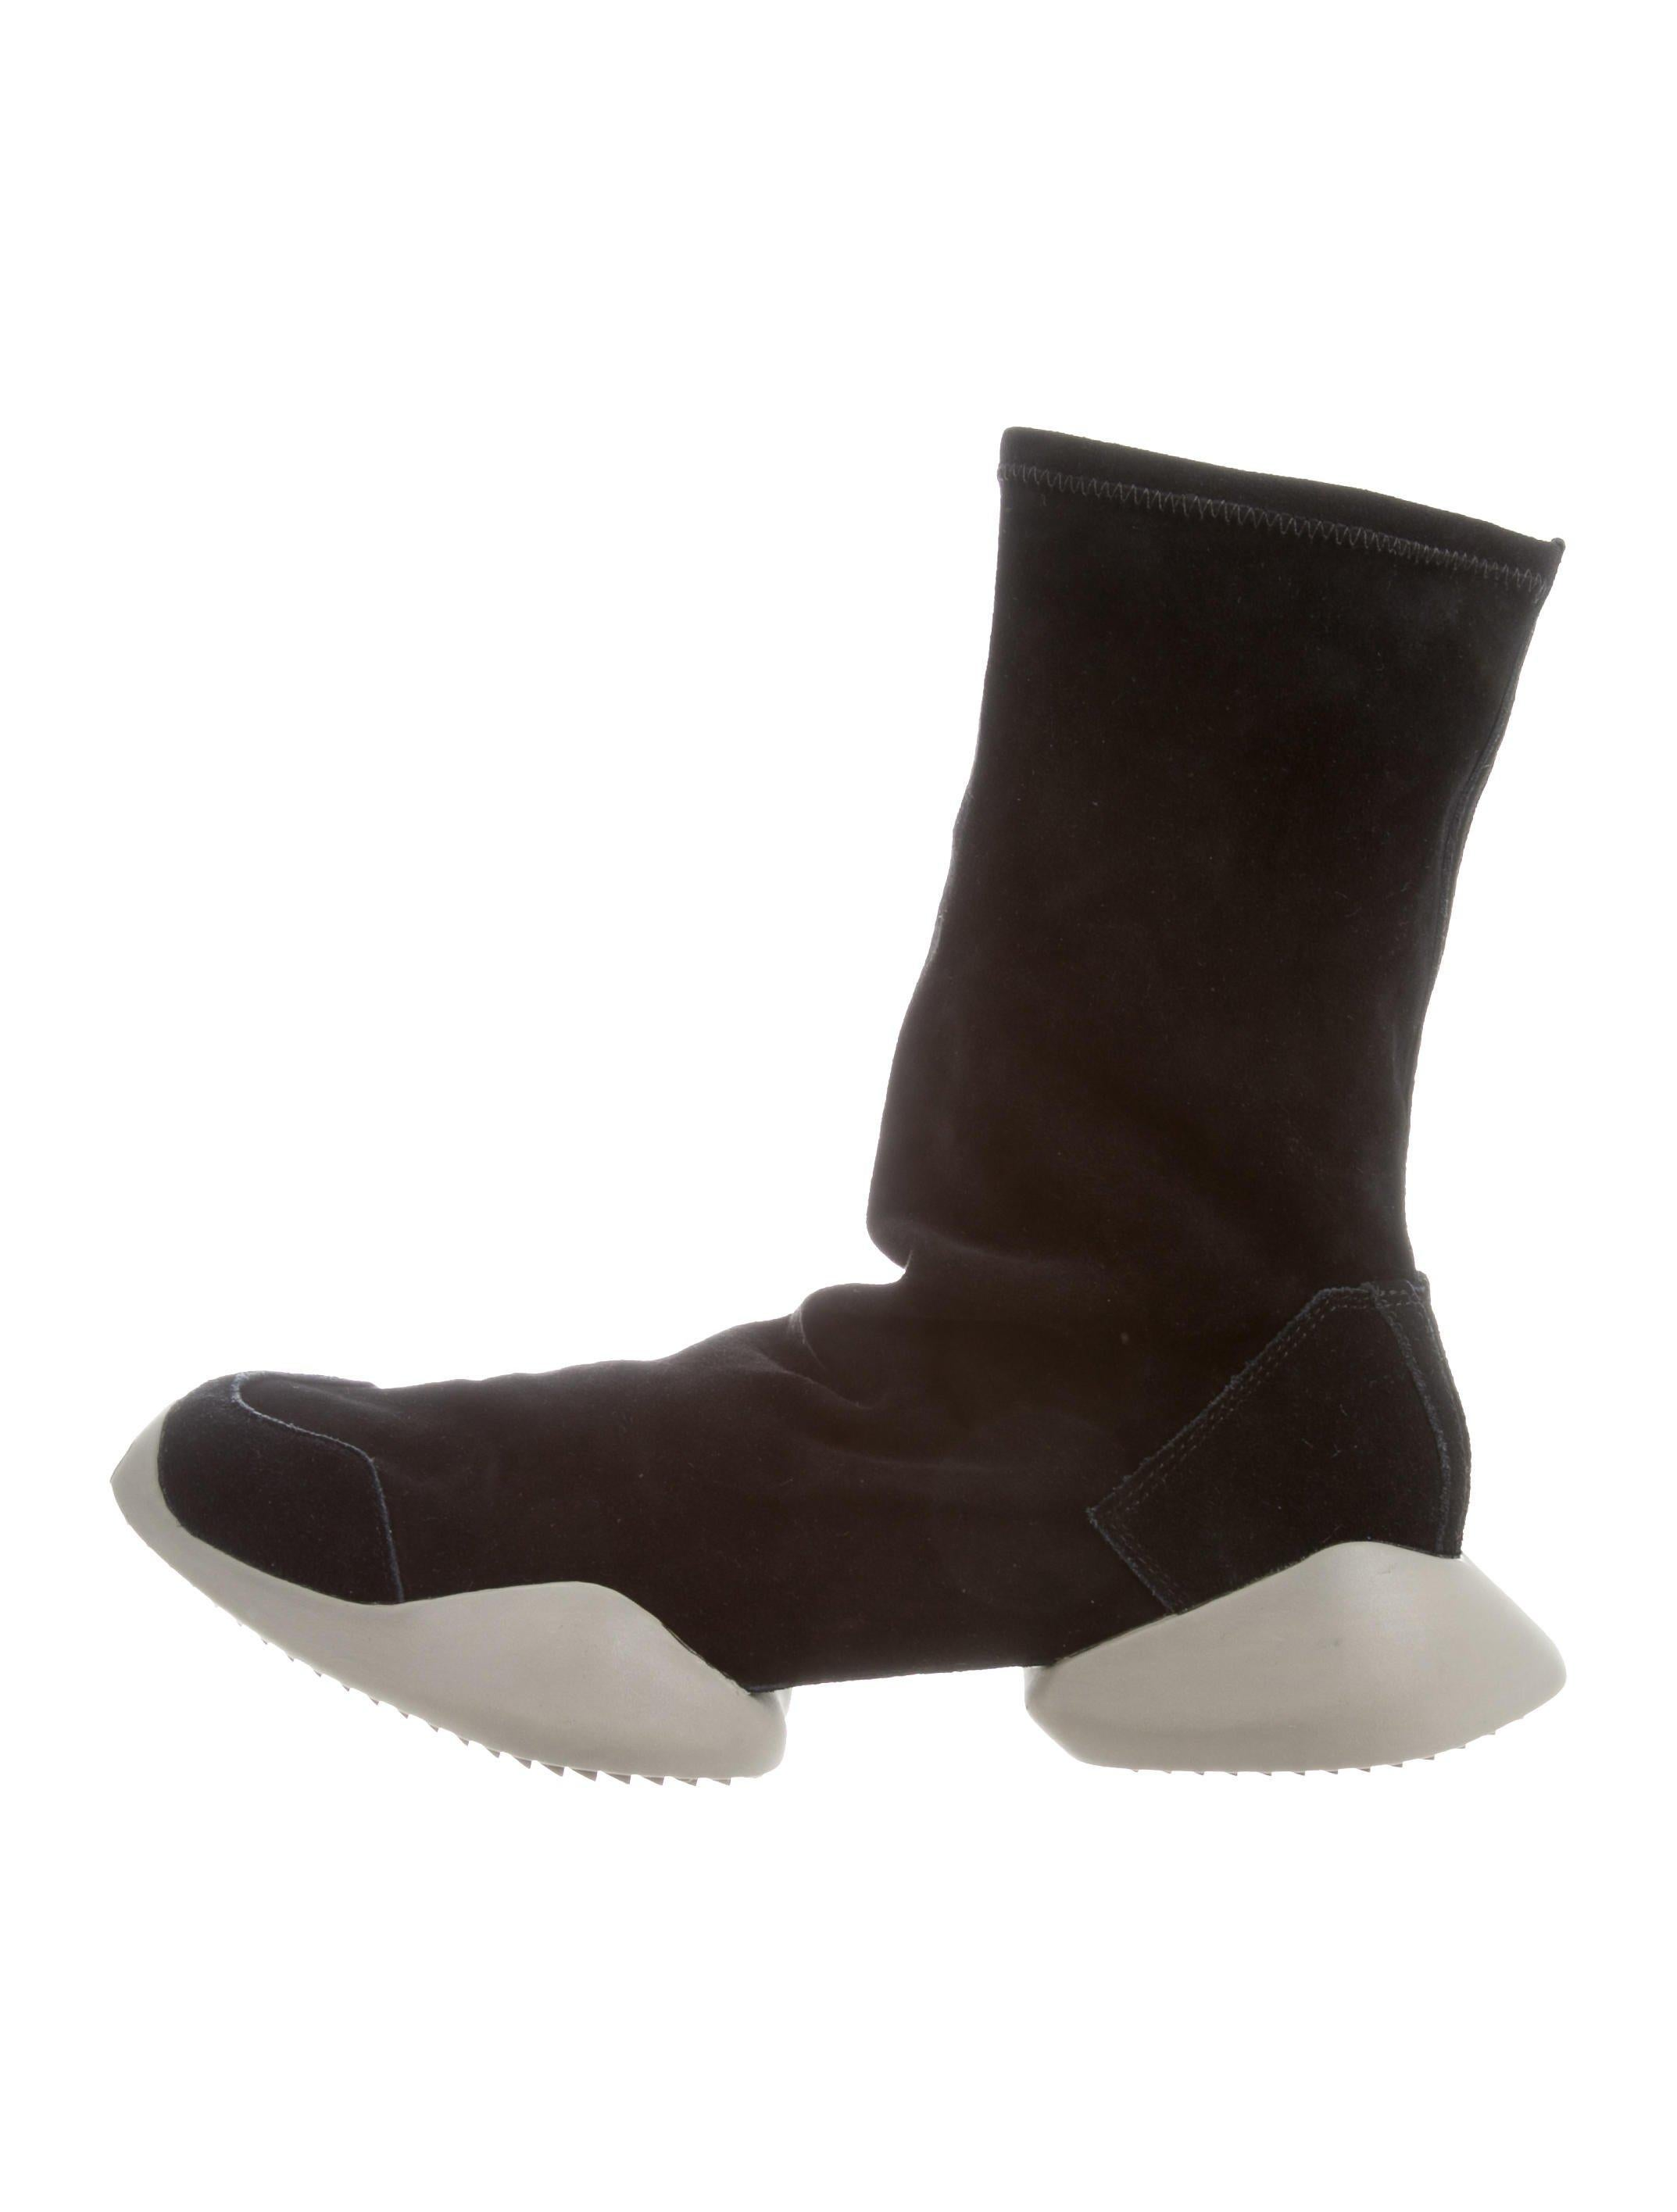 outlet new the best store to get Rick Owens x Adidas Runner Leather Sneakers w/ Tags dOtXD8ibJG